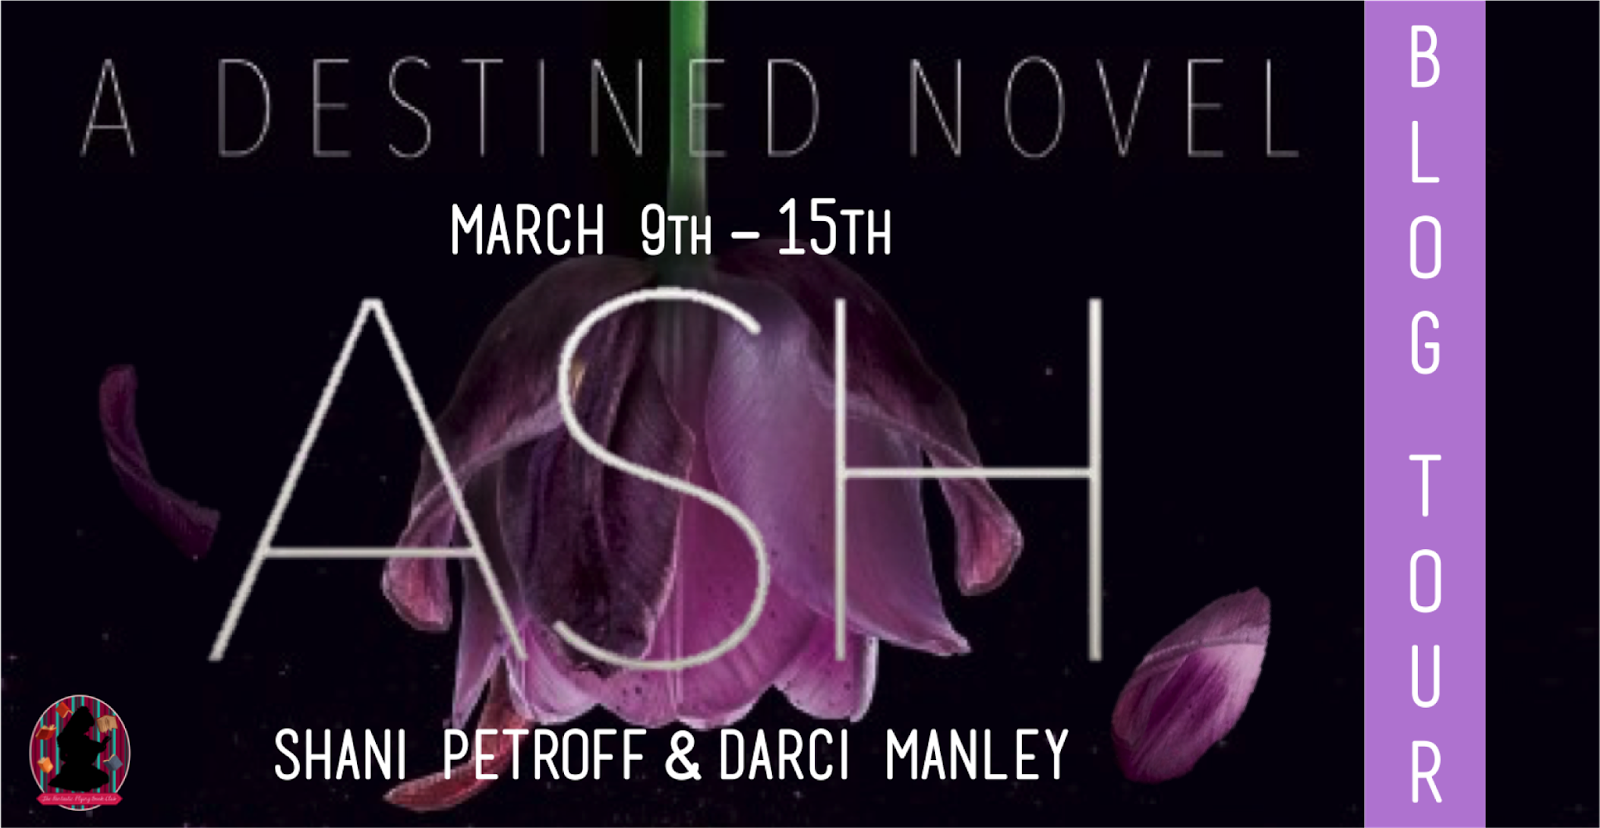 http://fantasticflyingbookclub.blogspot.com/2015/02/tour-schedule-ash-destined-novel-by.html